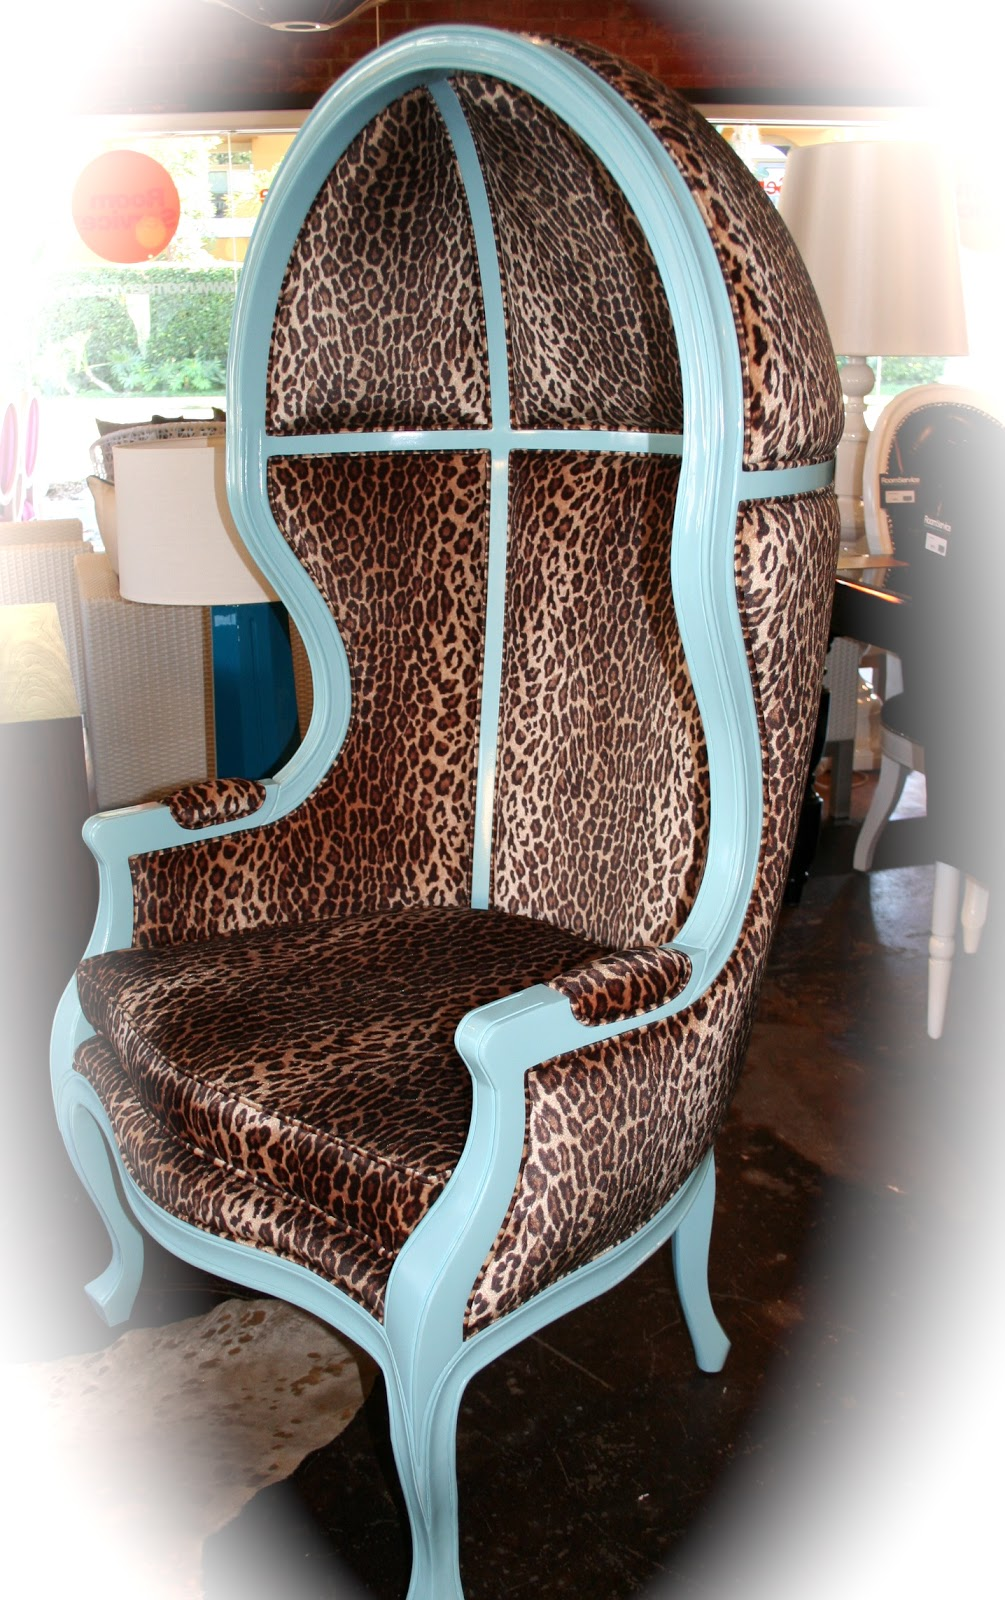 buy living room chairs fabindia furniture balloon designs pictures: